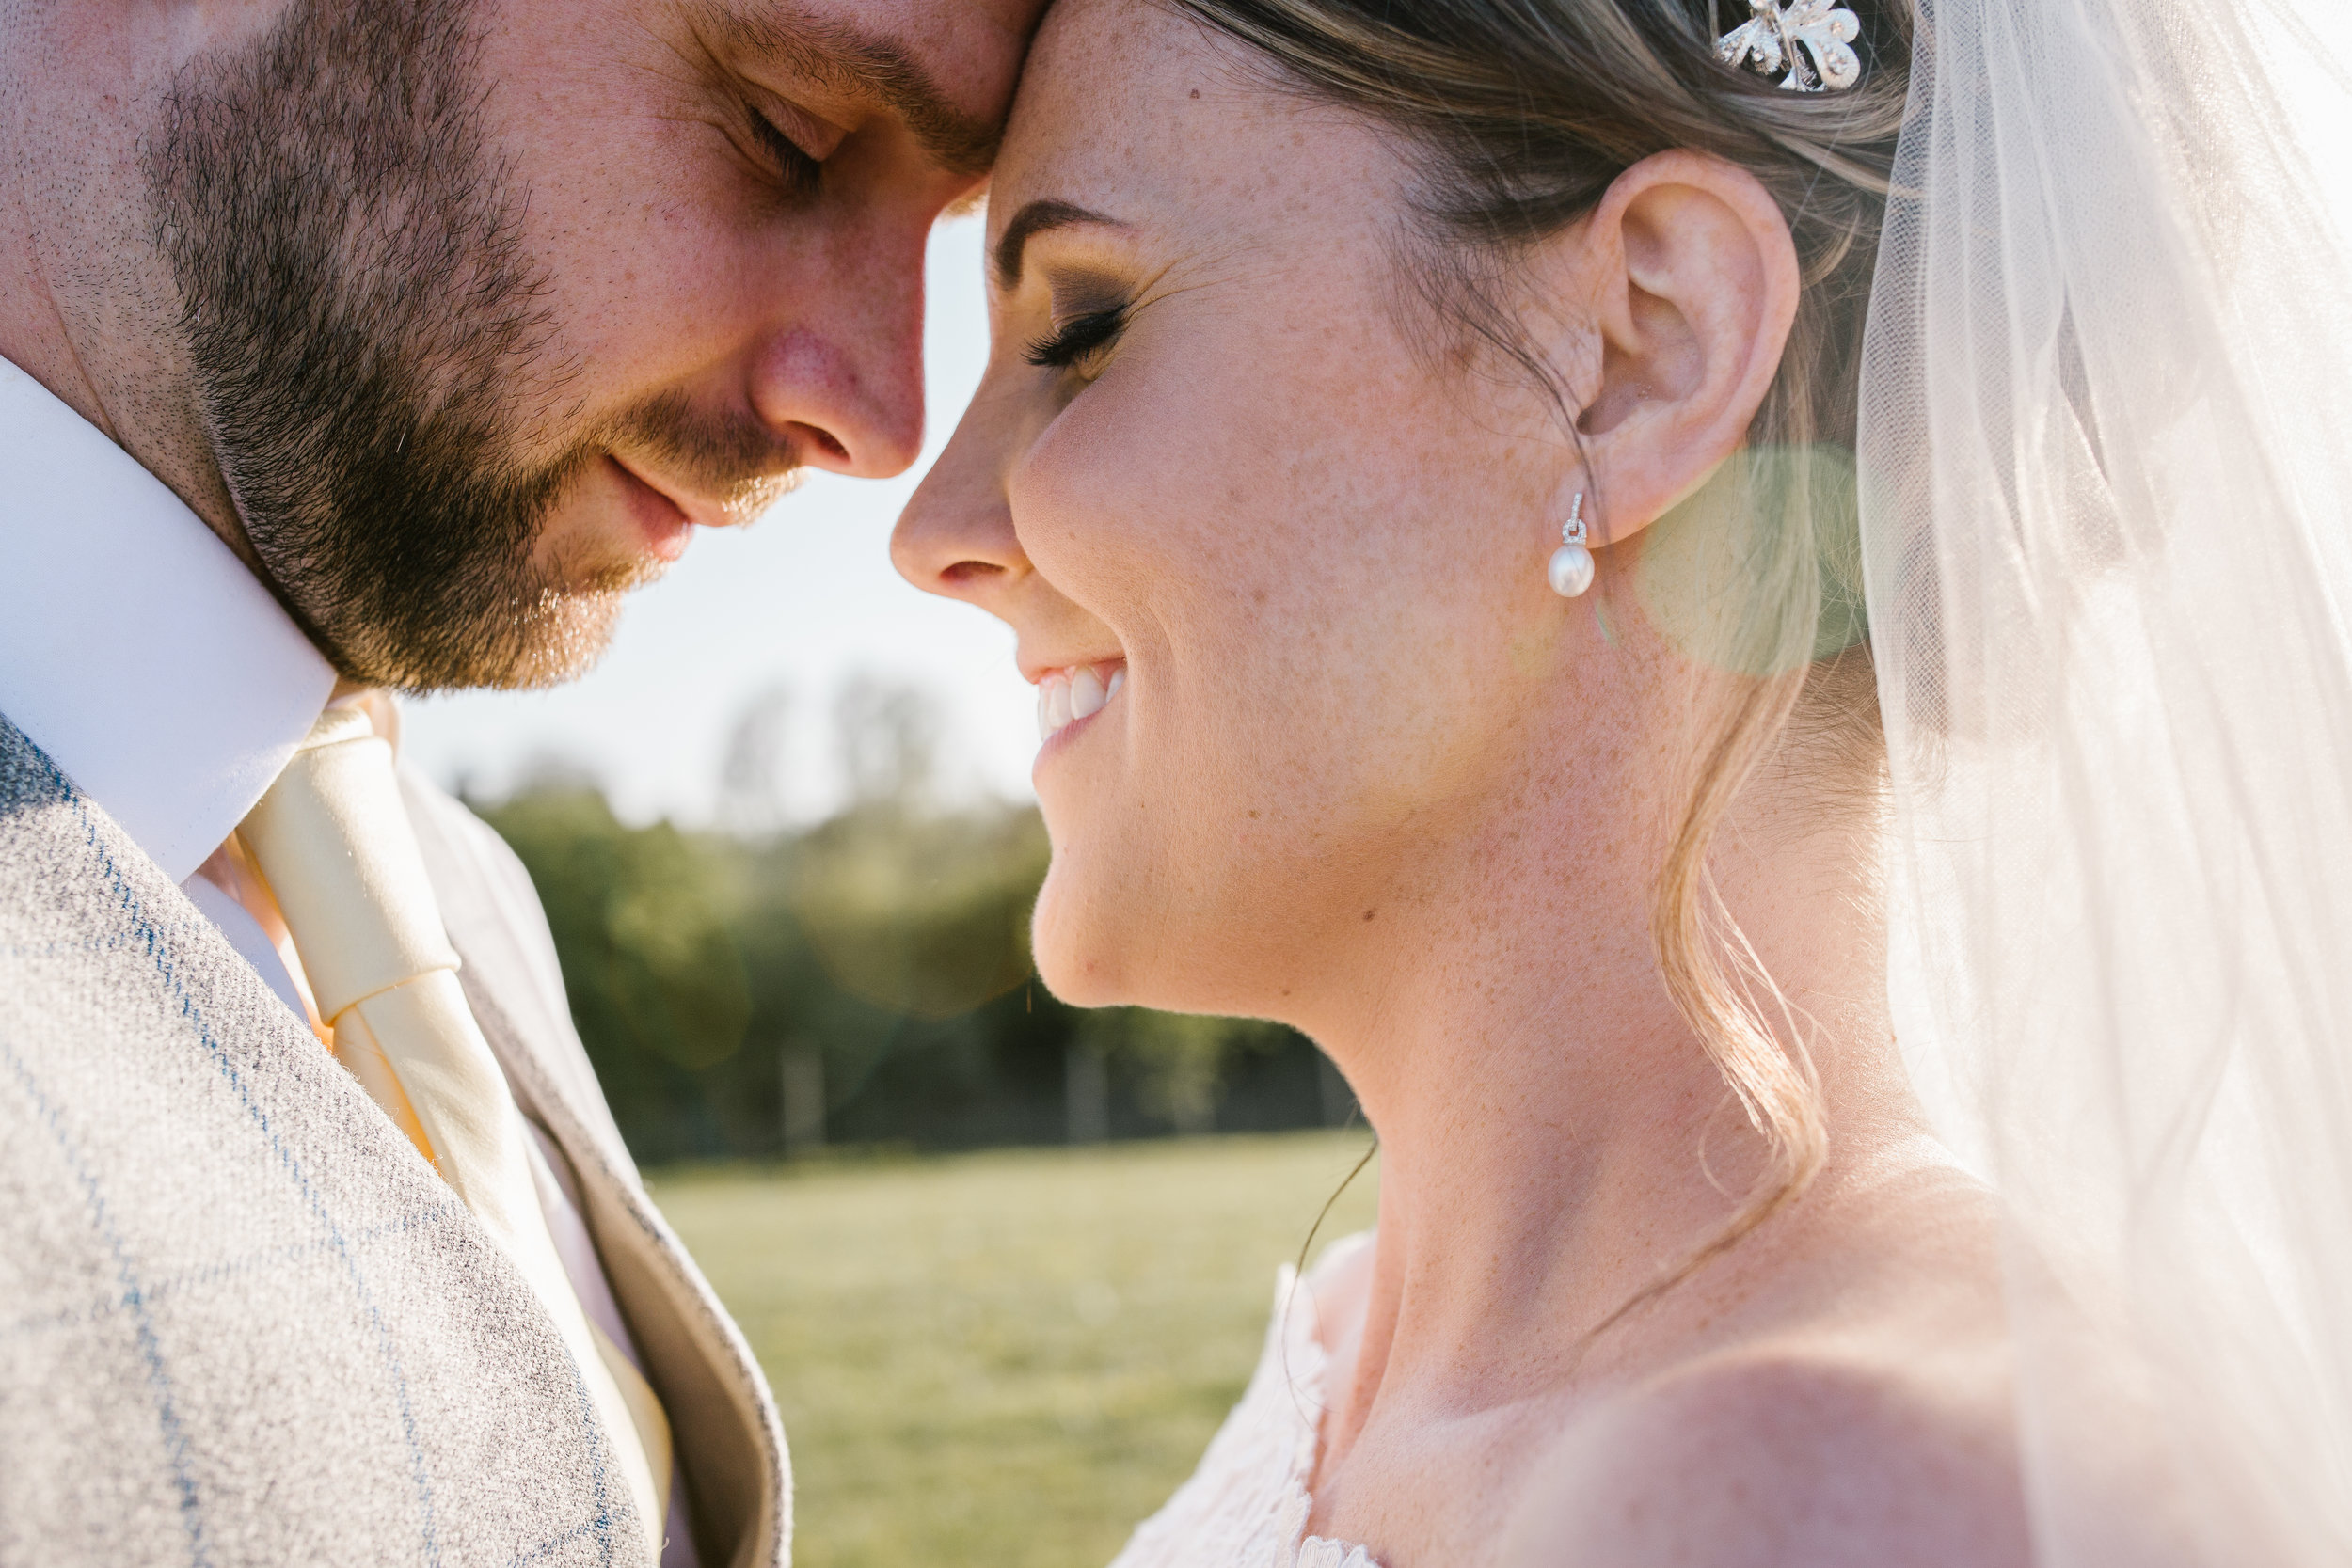 close up photo of bride and groom smiling at one another